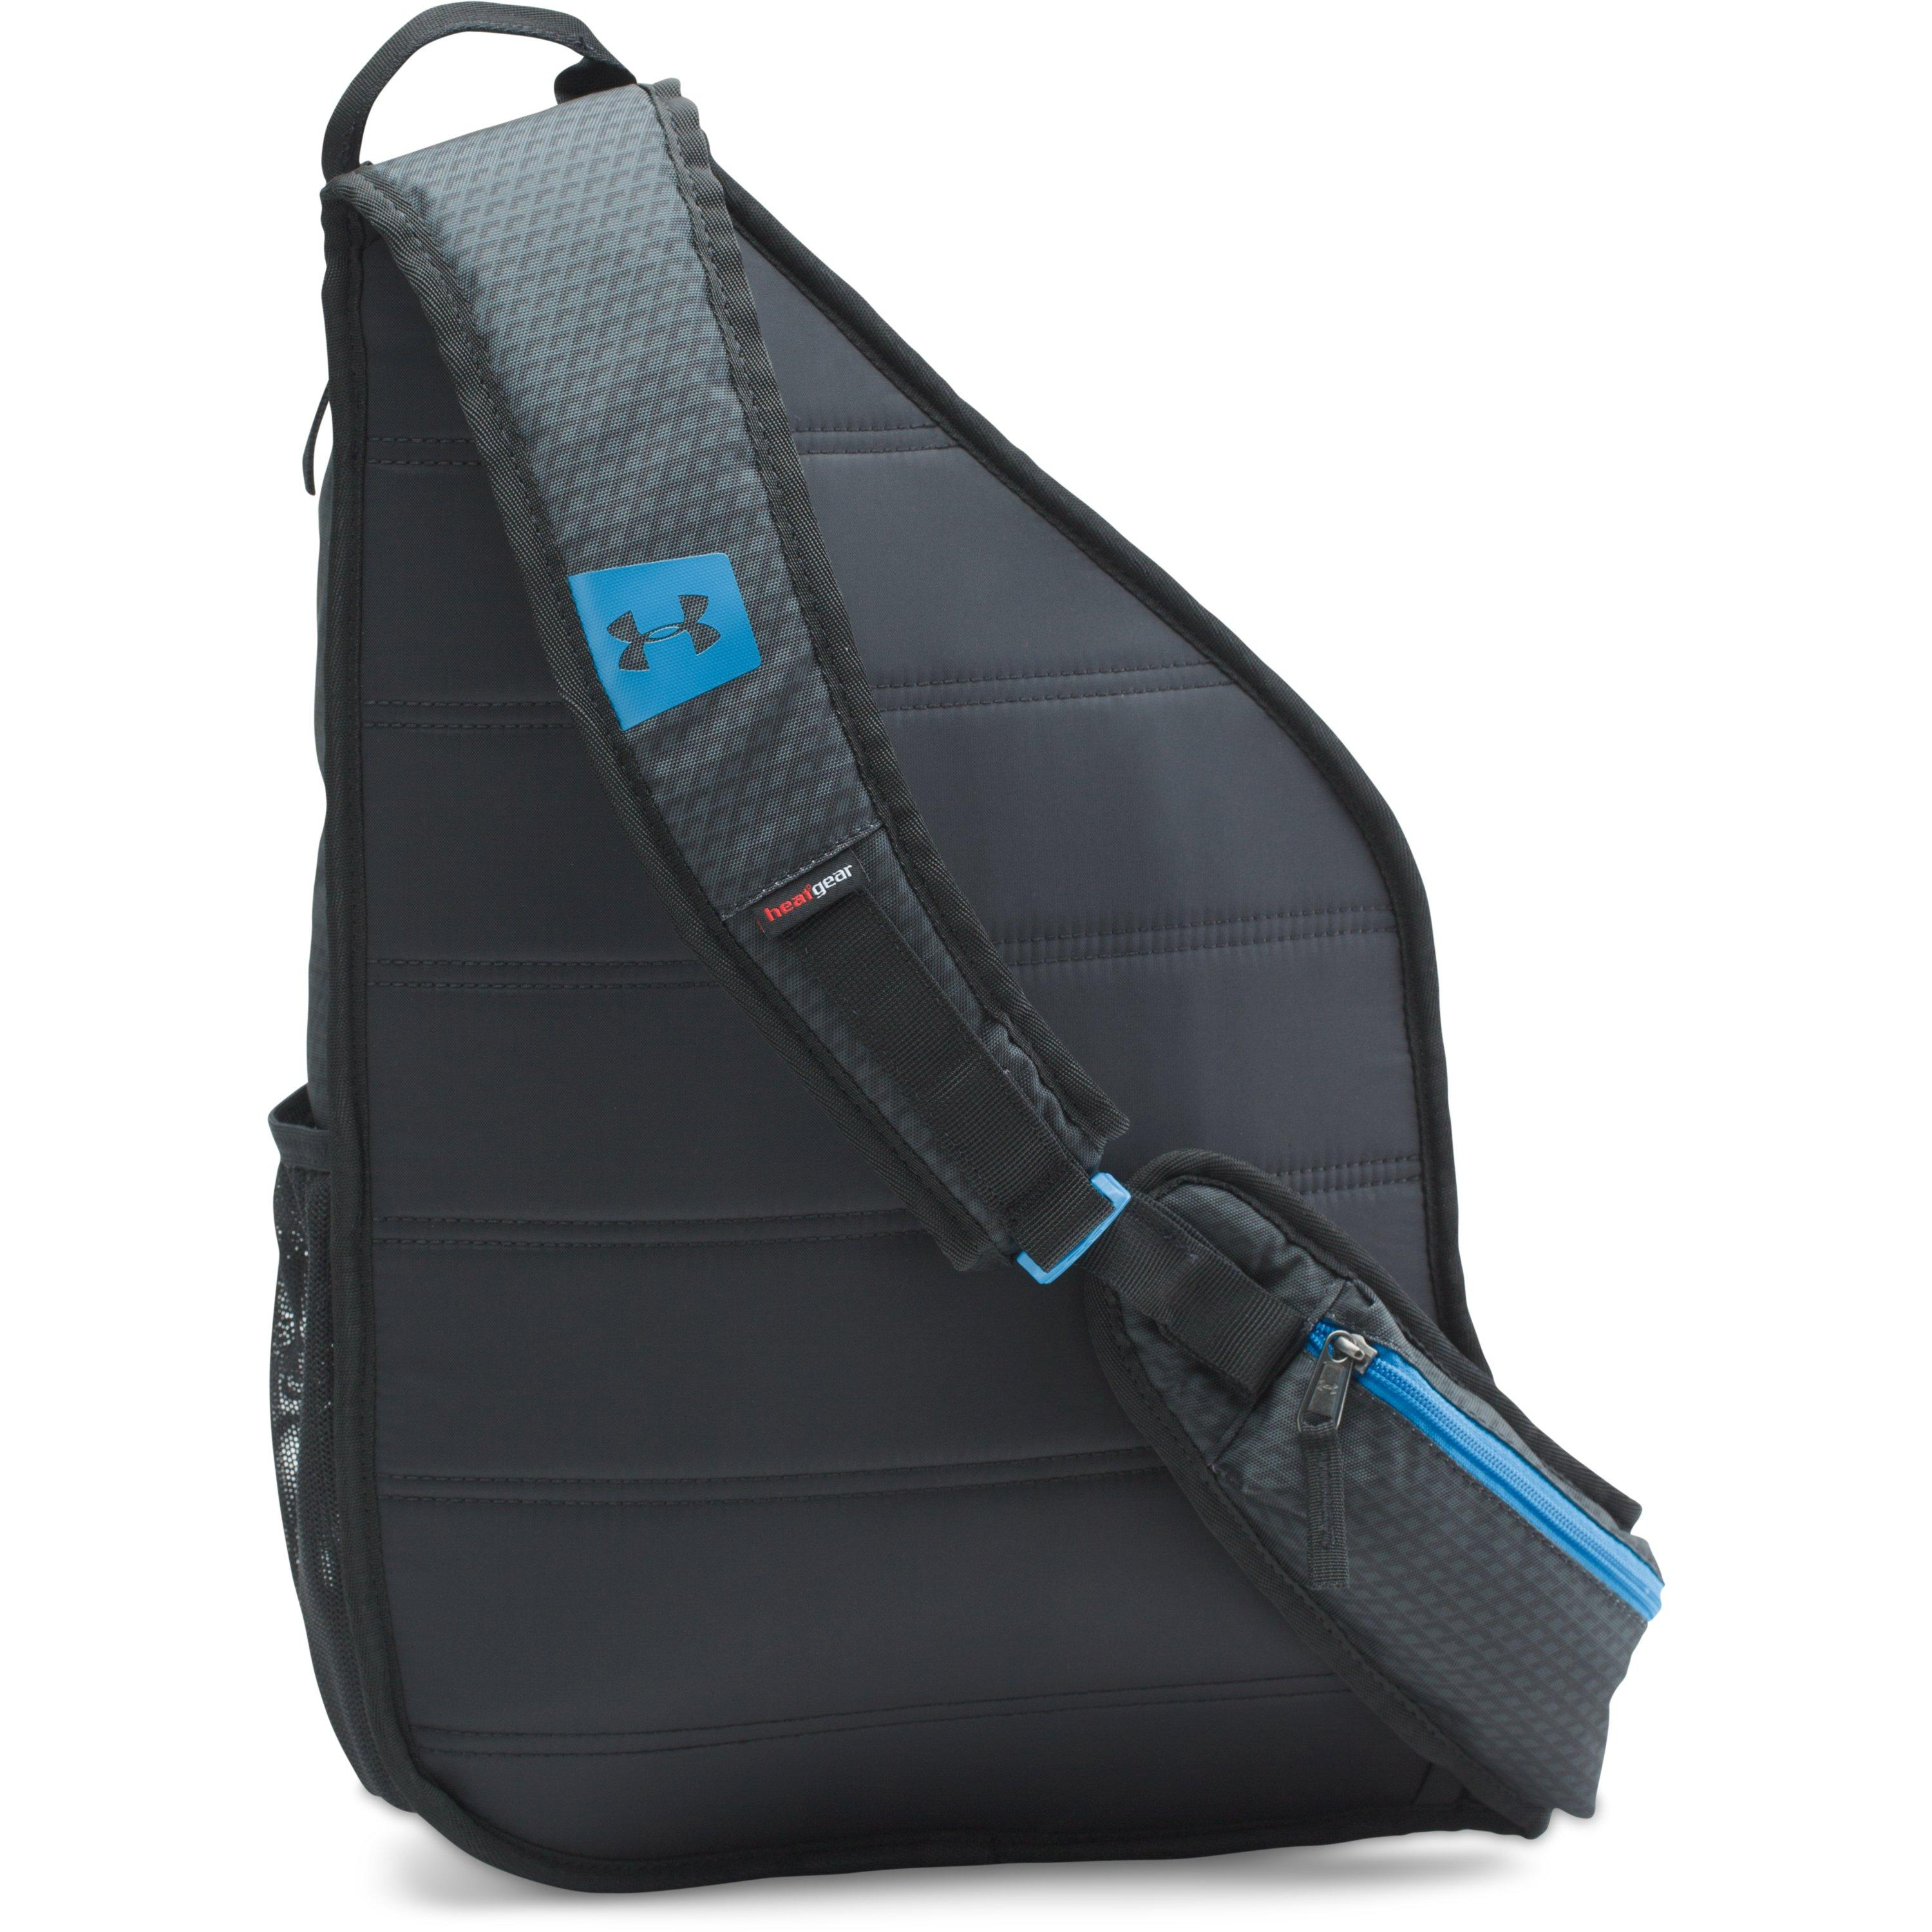 Lyst - Under Armour Ua Compel Sling 2.0 Backpack in Blue for Men 73c3534a32556